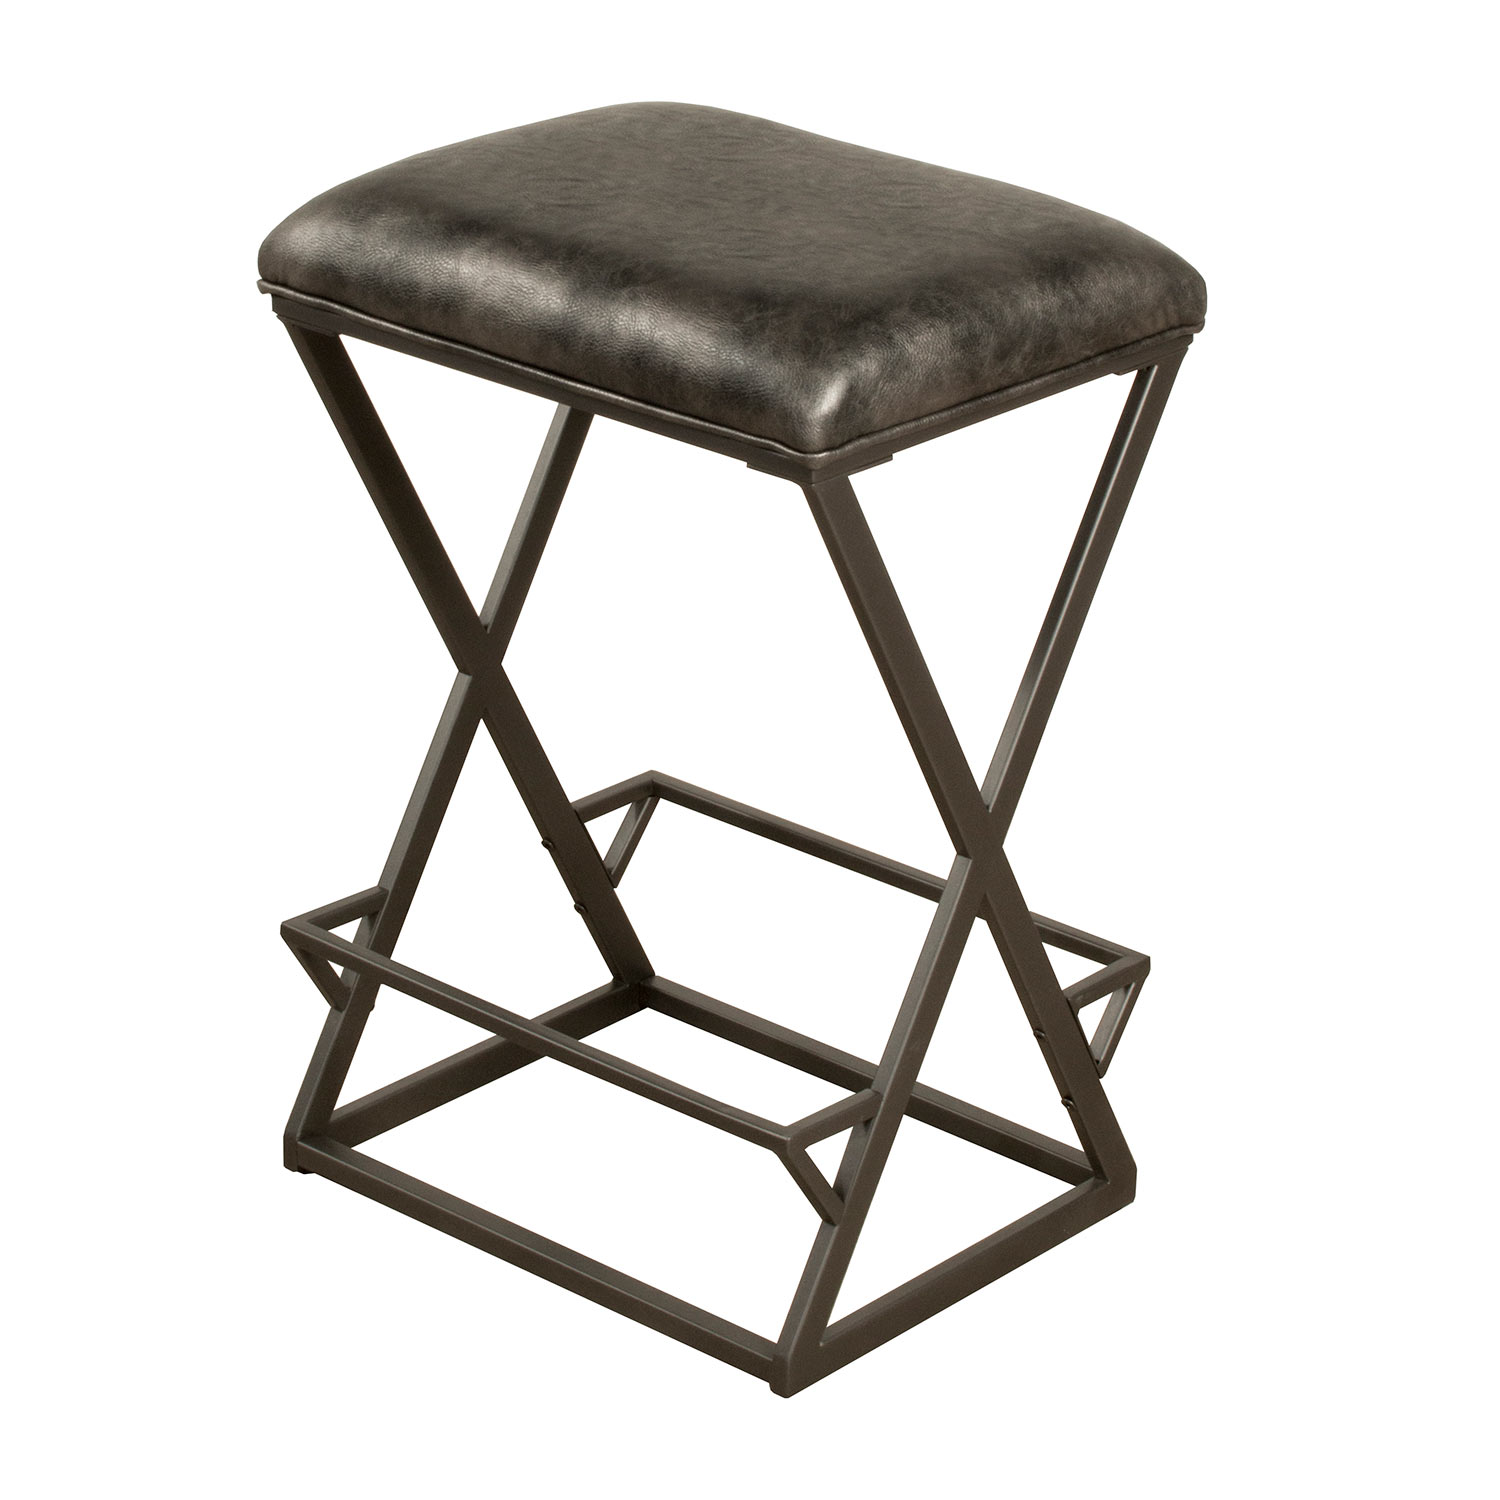 Hillsdale Kenwell Backless Non-Swivel Counter Stool - Charcoal